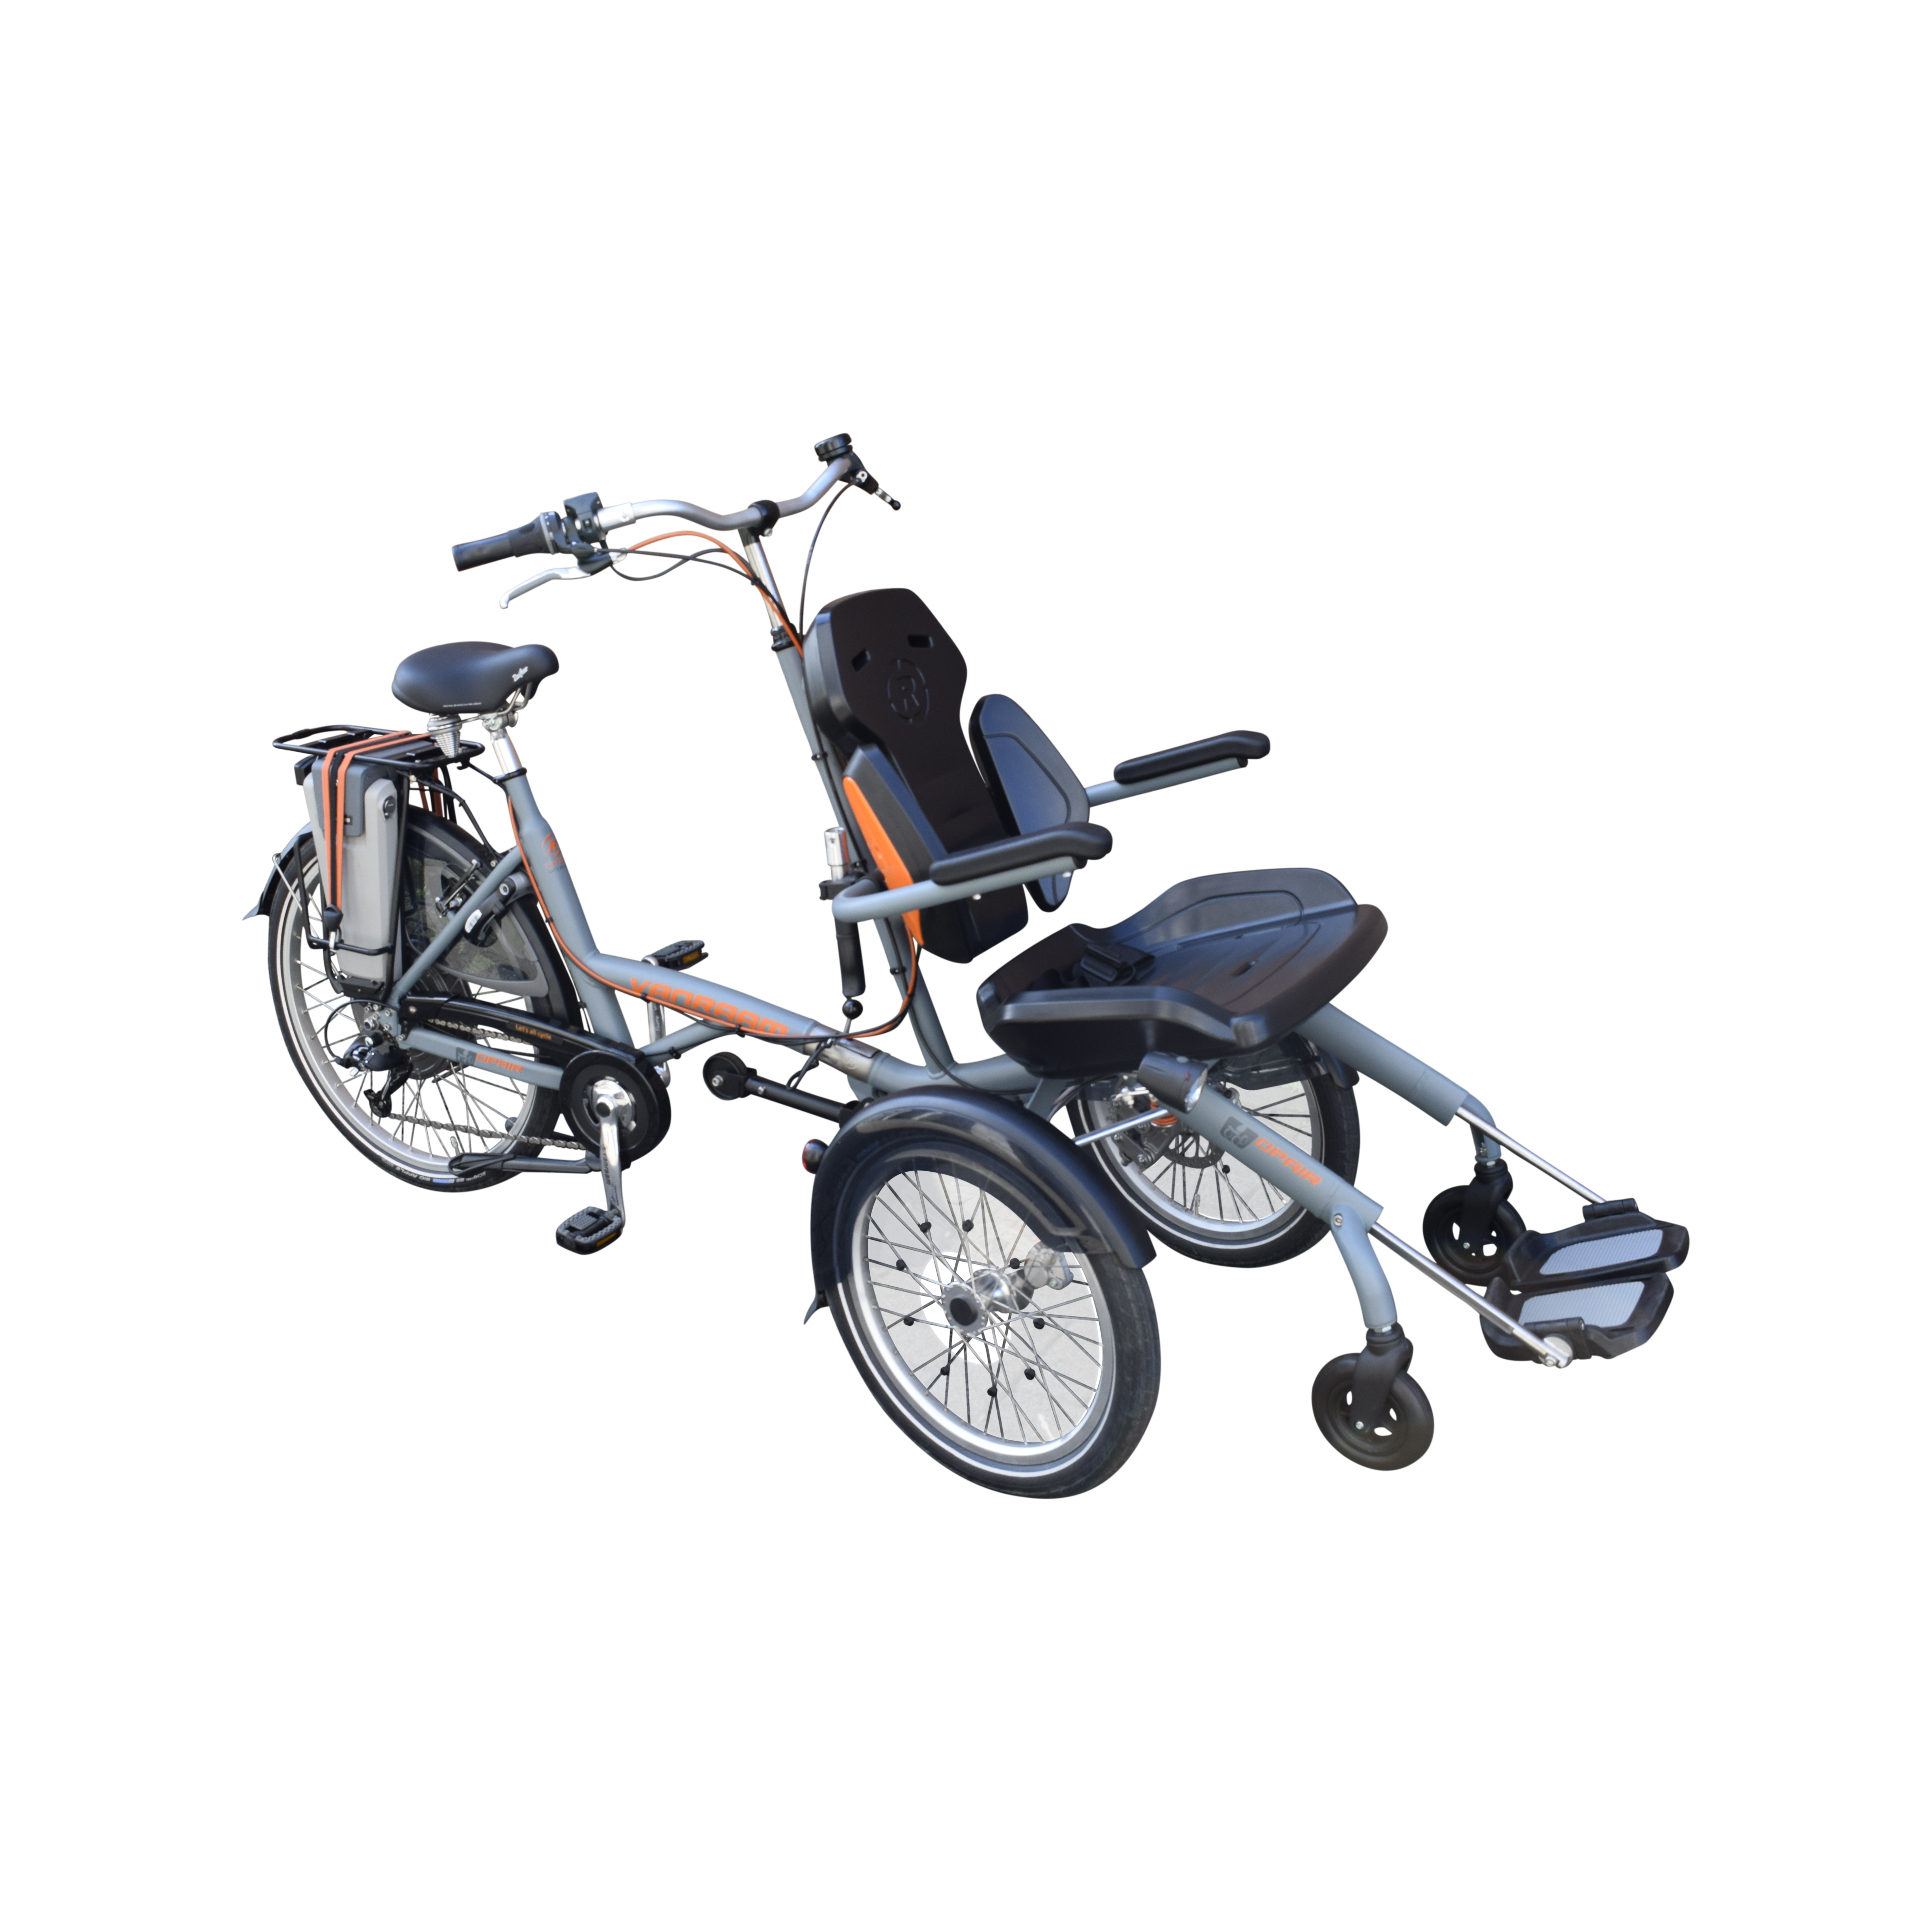 b881a67d2b7 The O'pair Wheelchair Bike has a suspension wheelchair mounted on the front  side of the wheelchair bike. The rider has a good view of and can watch  over the ...